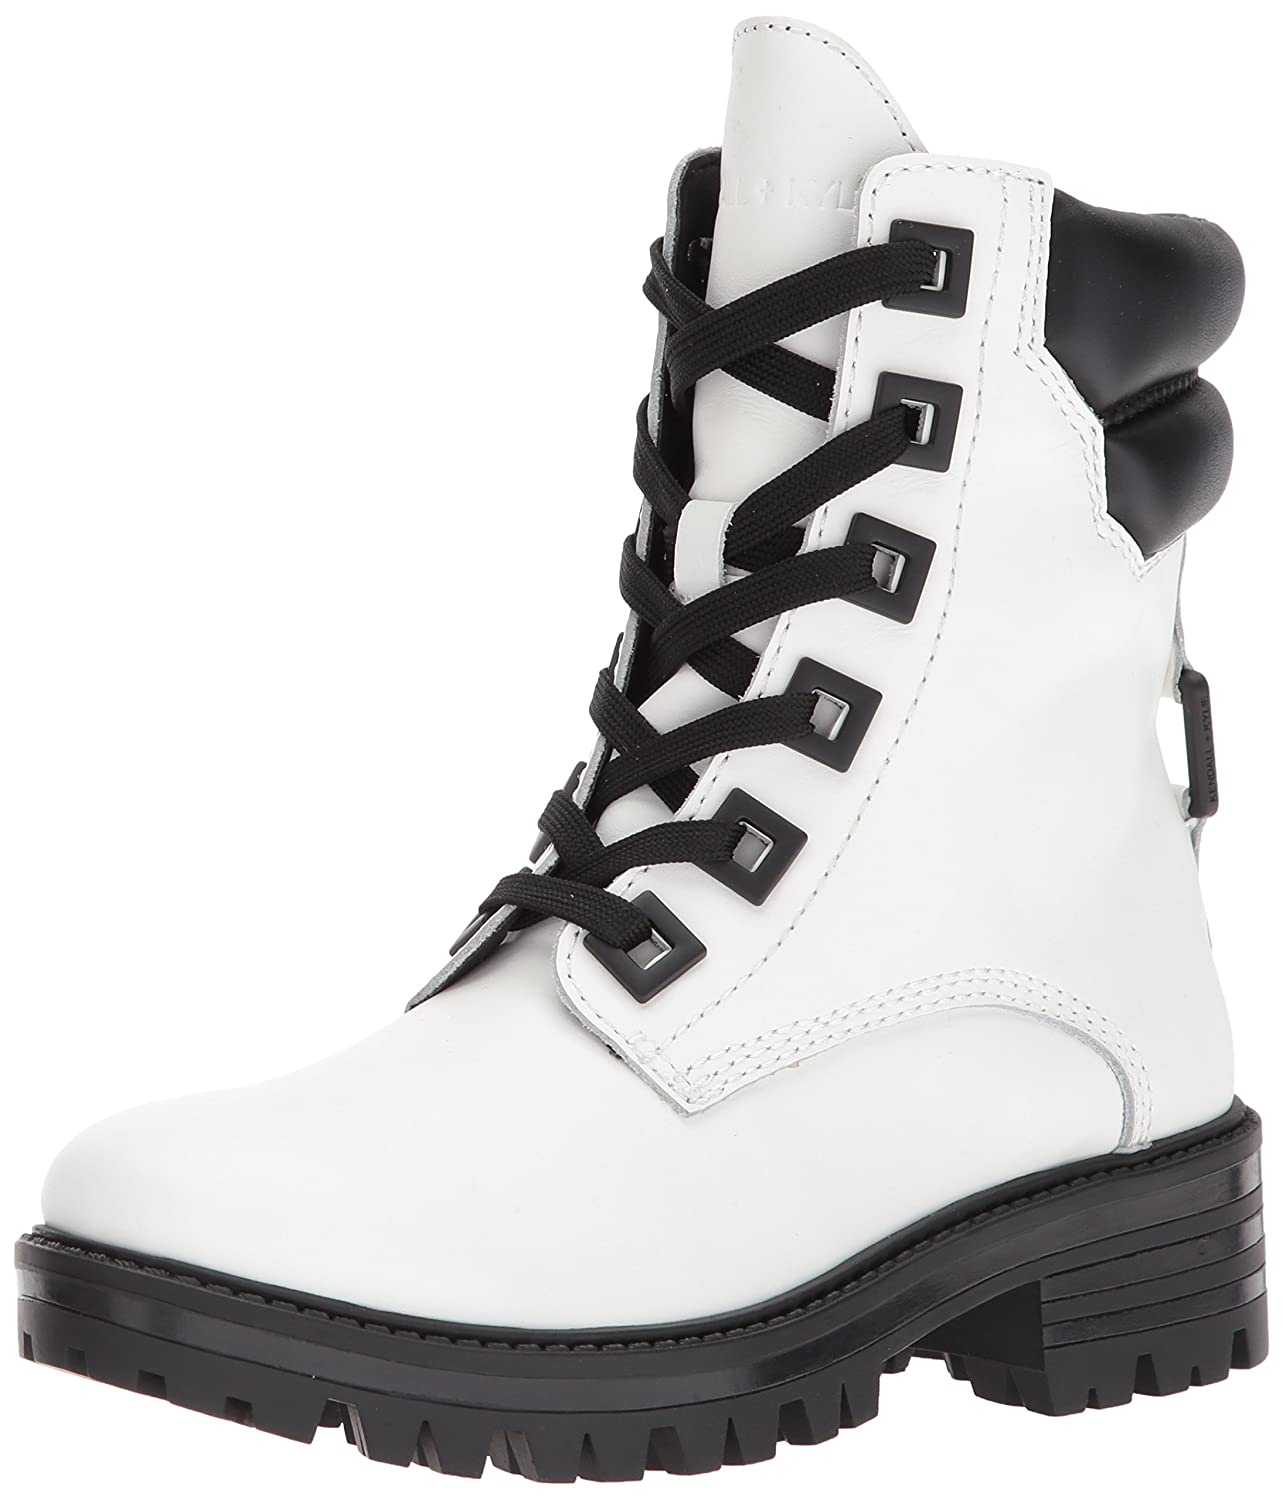 KENDALL + KYLIE Women's East Combat Boot B071KX1MLW 5 B(M) US|White